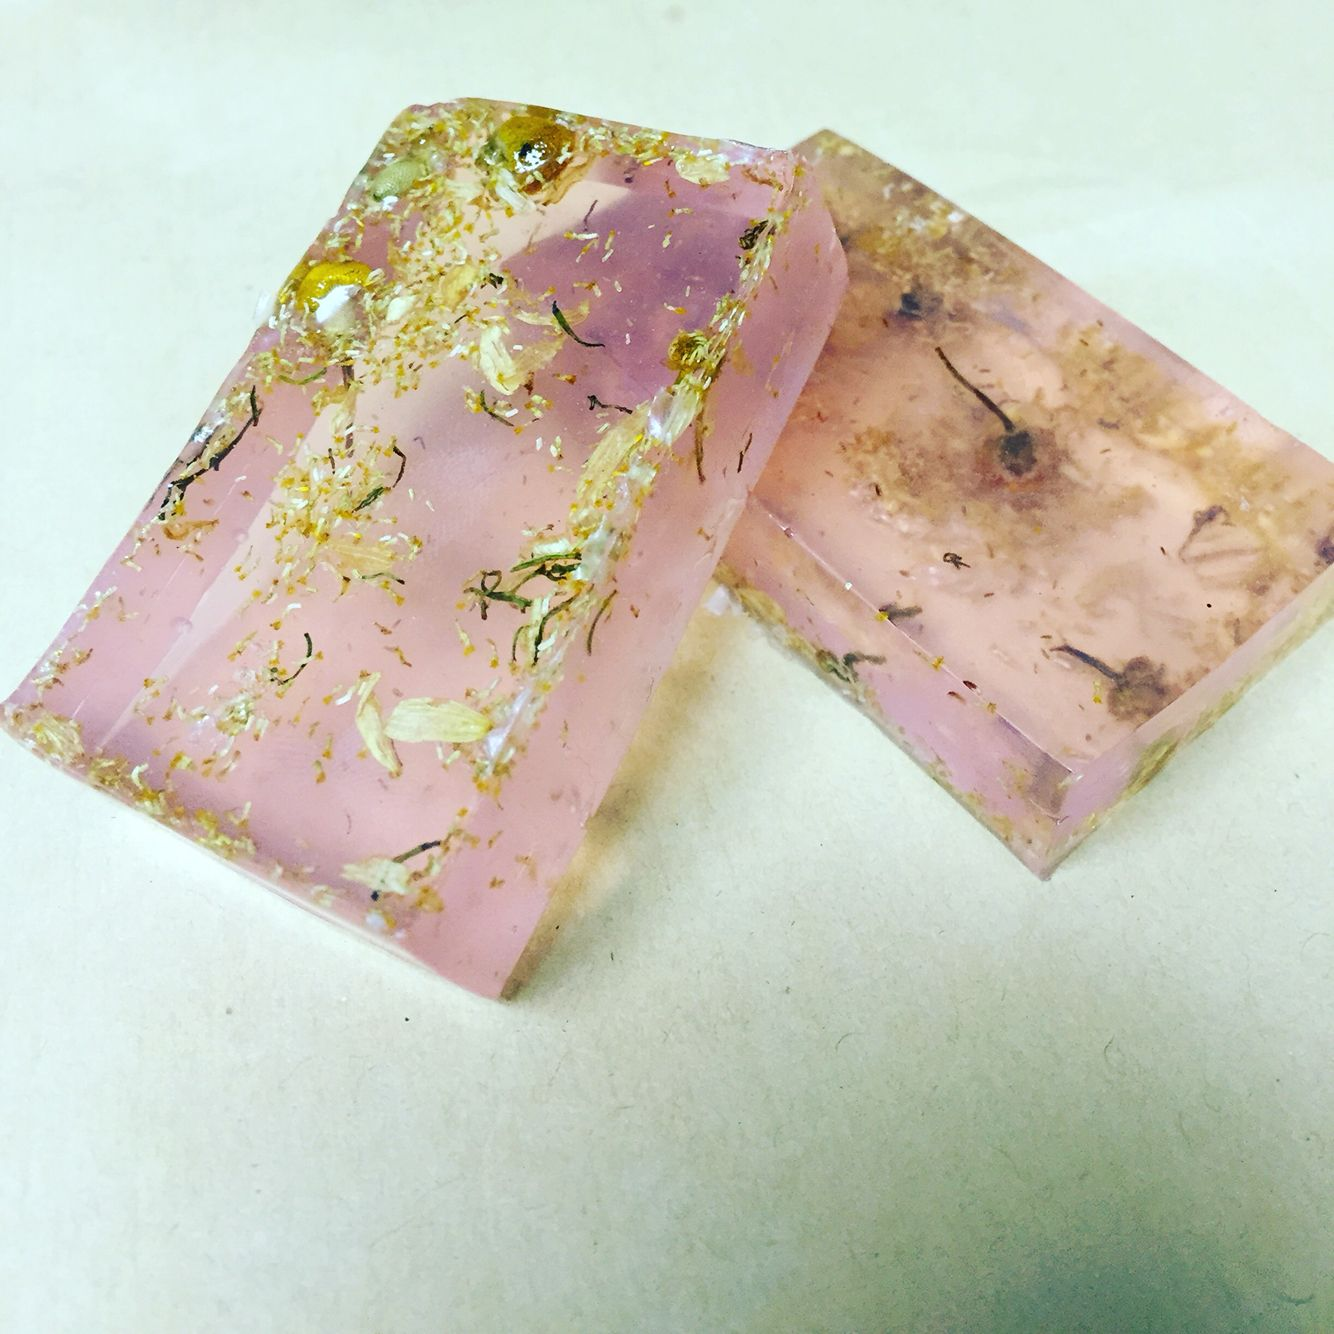 Honey glycerin soap infused with coconut, honey almond, and vanilla essential oils and dried chamomile flowers #WanderLust Go to our etsy store to purchase